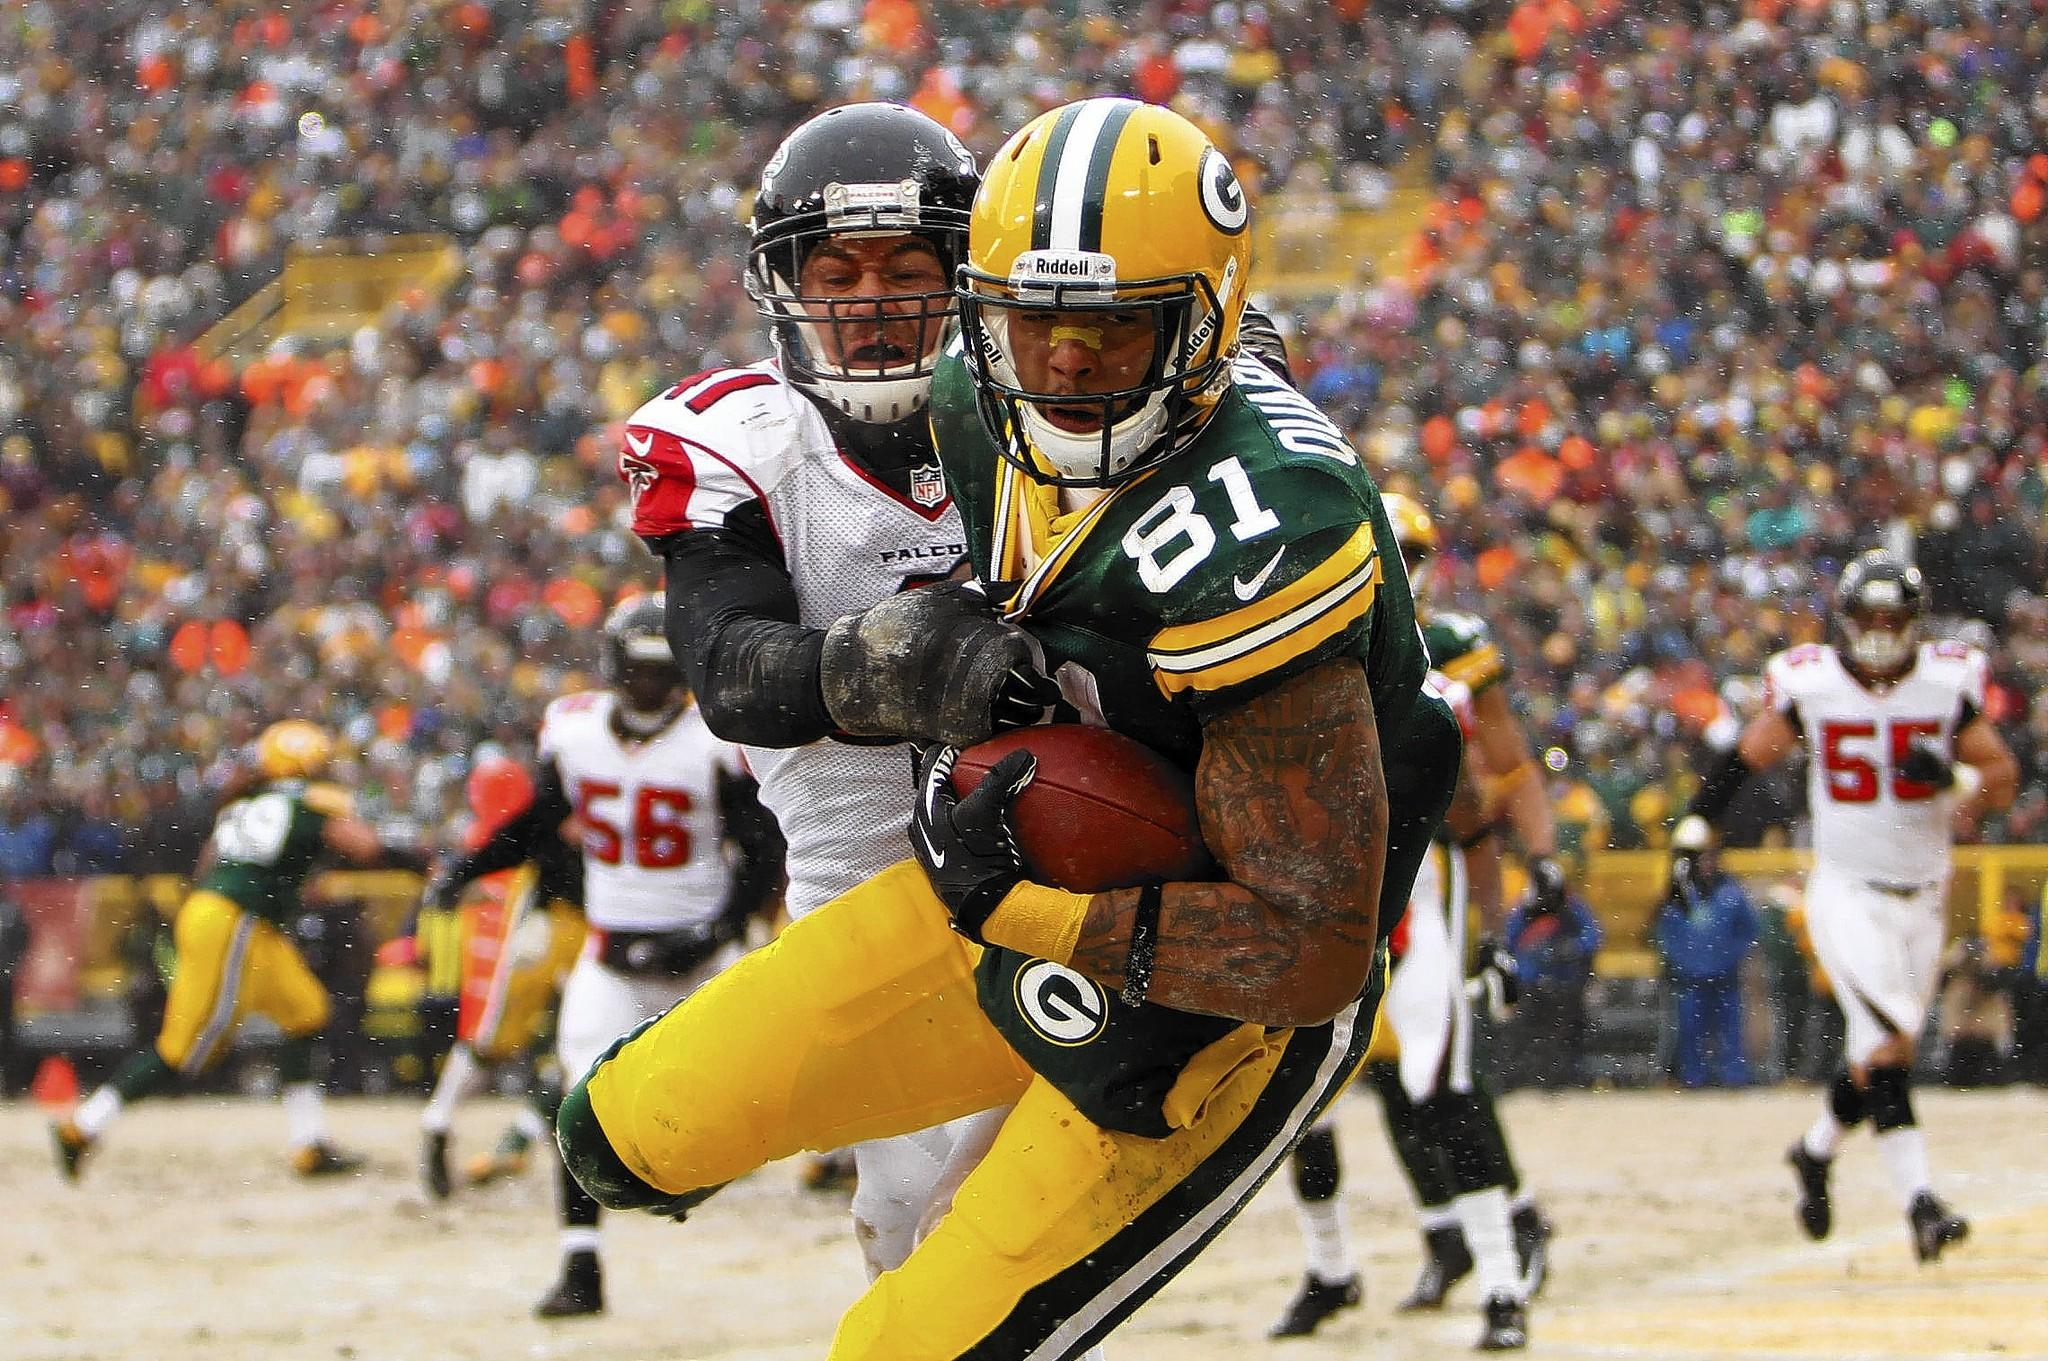 Andrew Quarless #81 of the Green Bay Packers makes the catch in the endzone for a touchdown during the second half of play against the Atlanta Falcons at Lambeau Field on December 08, 2013 in Green Bay, Wisconsin.